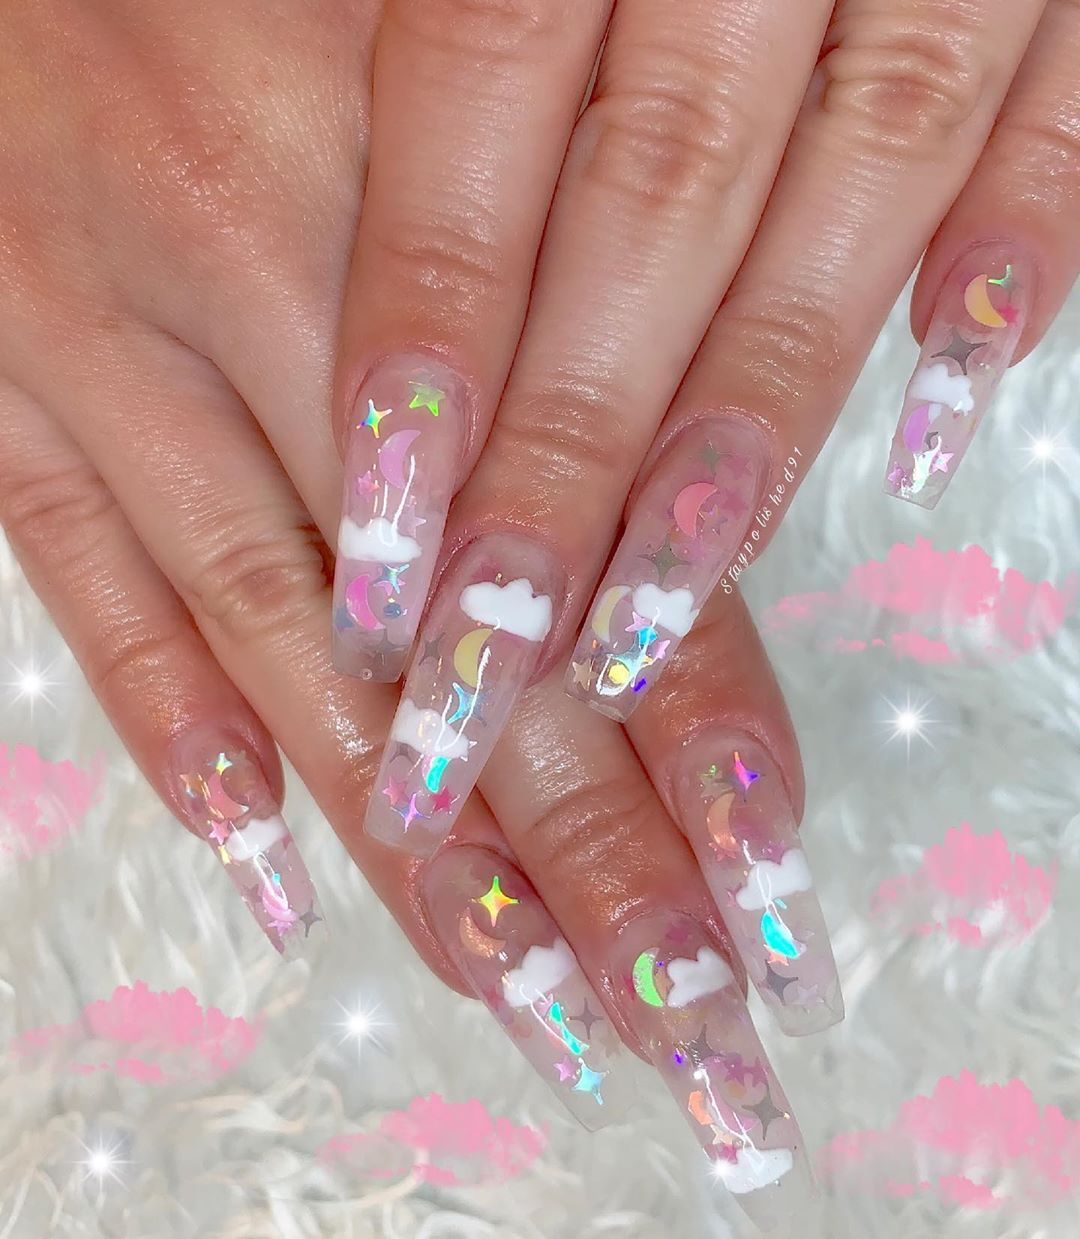 glass-nail-trend-style-rave